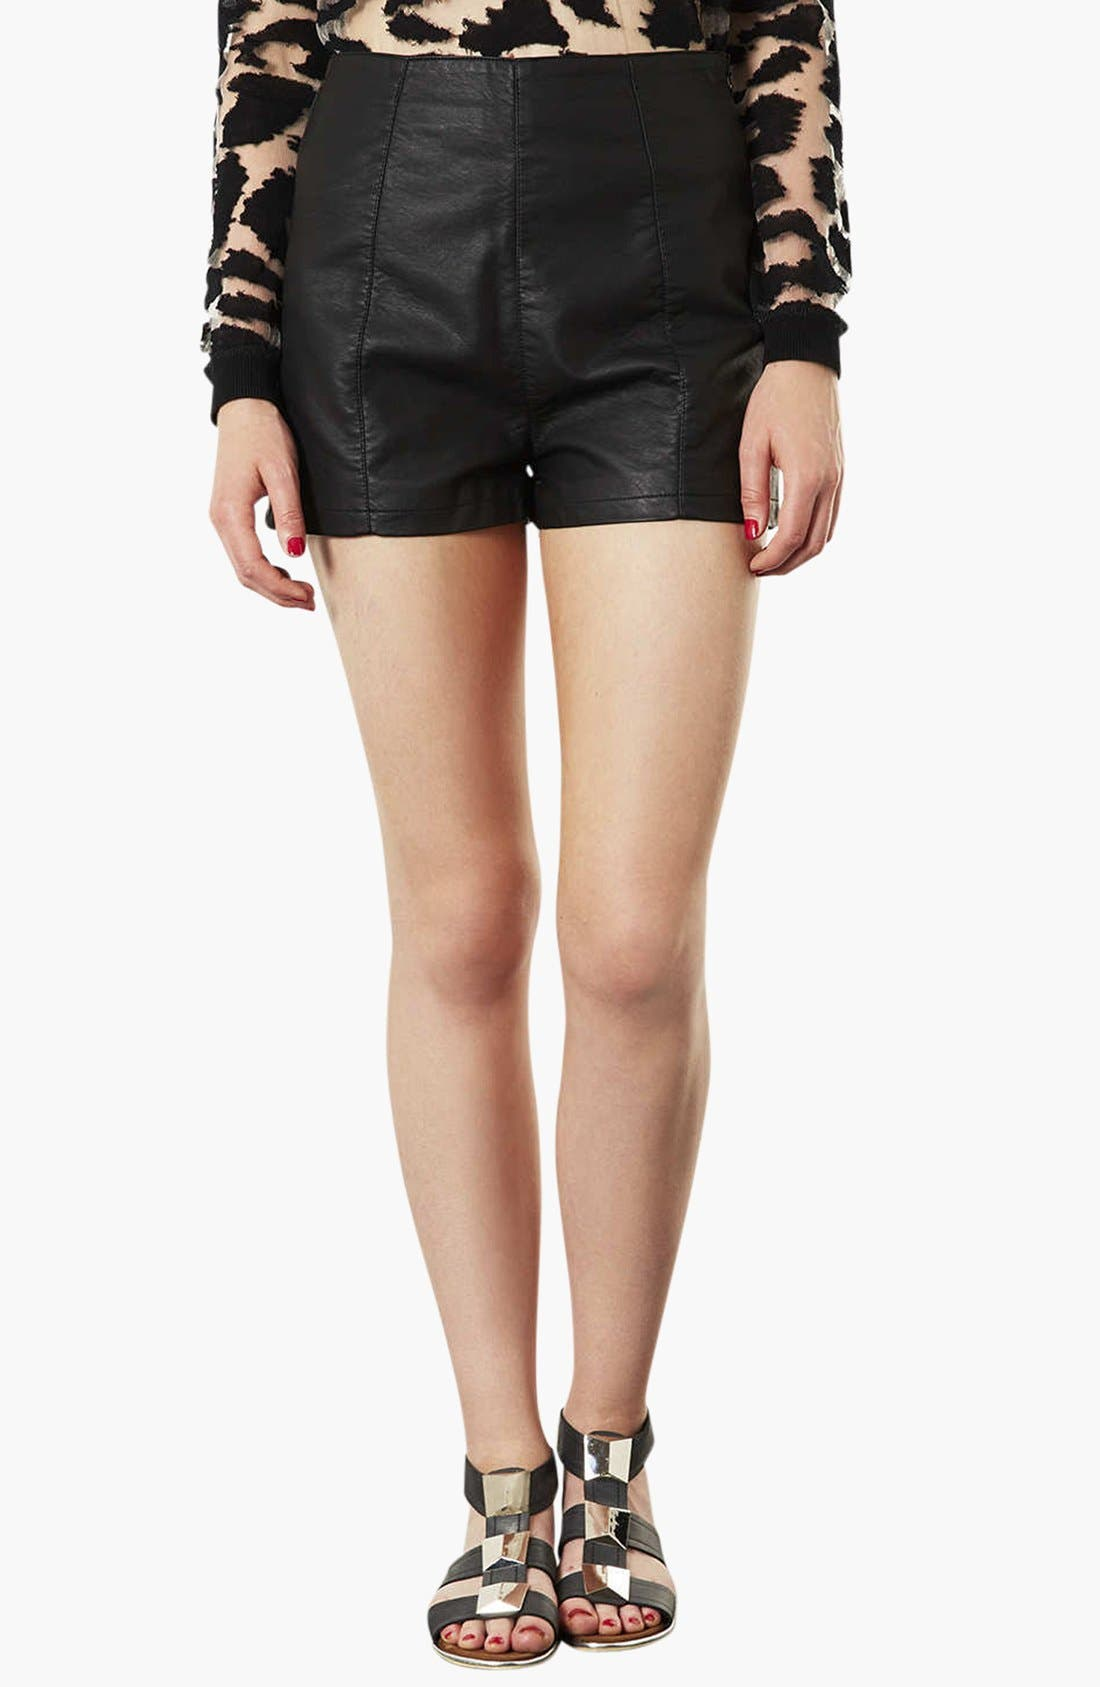 Alternate Image 1 Selected - Topshop 'Lola' High Waist Faux Leather Shorts